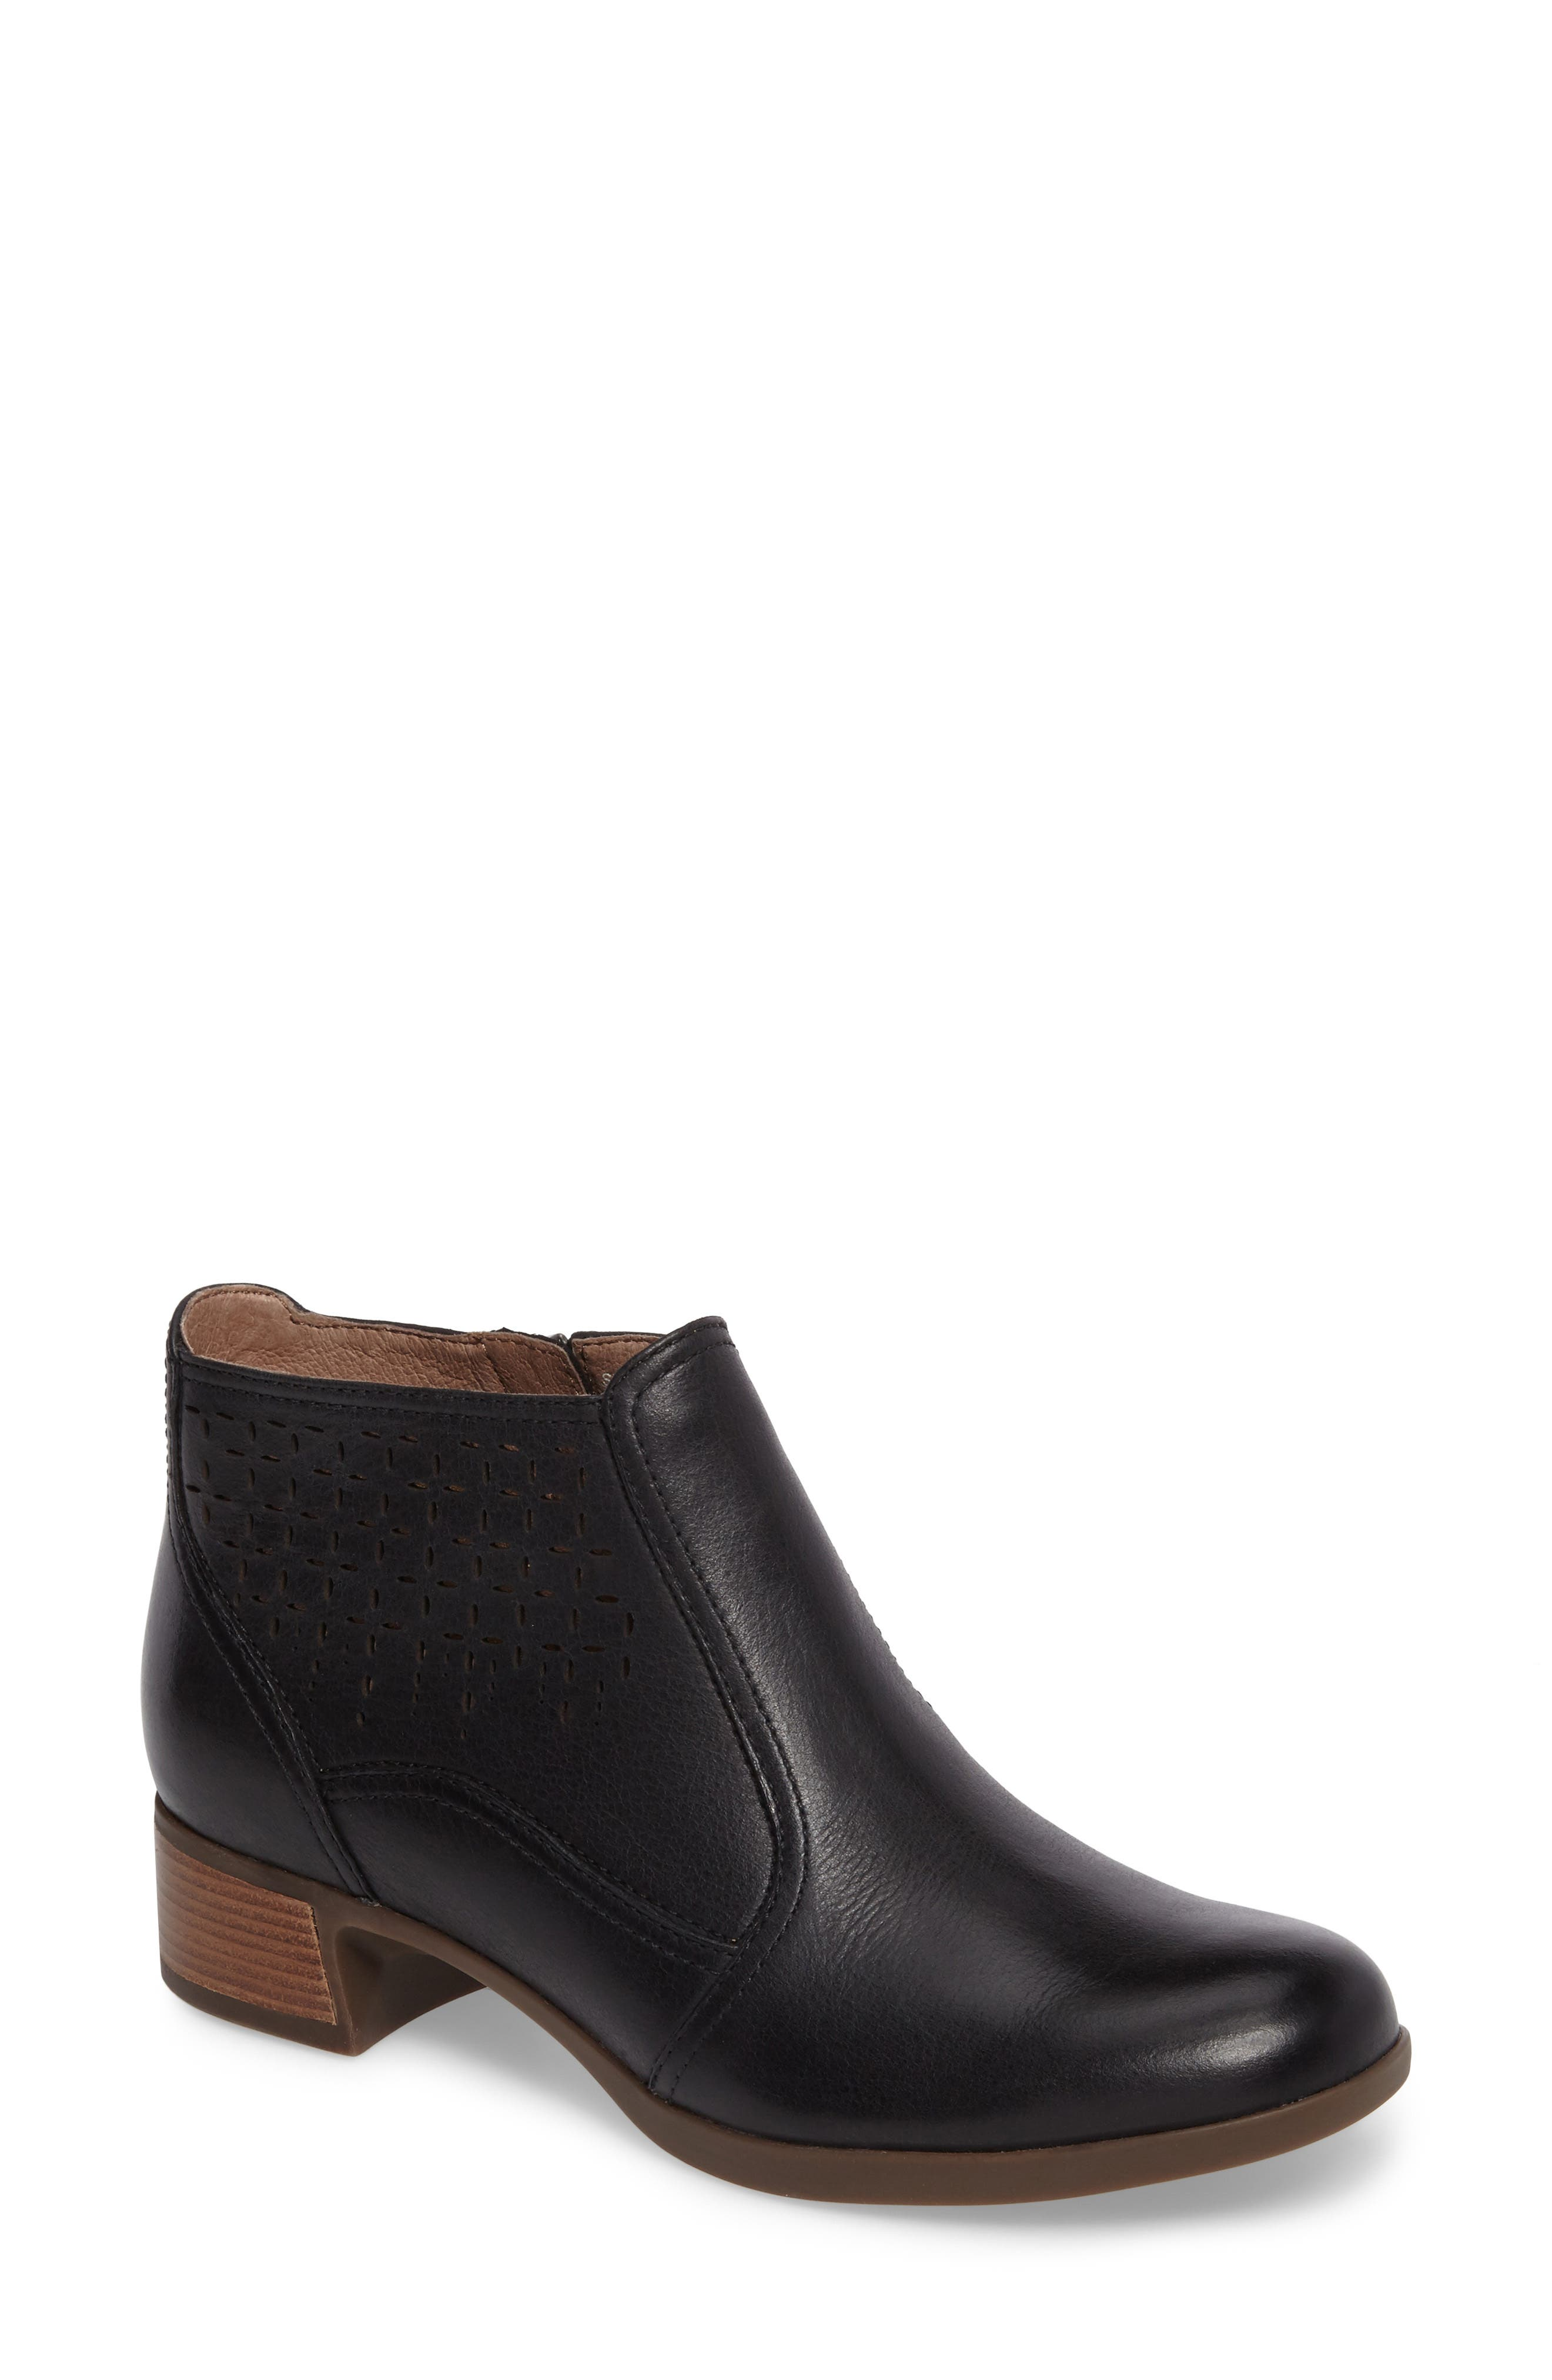 Liberty Laser Cut Bootie,                         Main,                         color, Black Burnished Nappa Leather